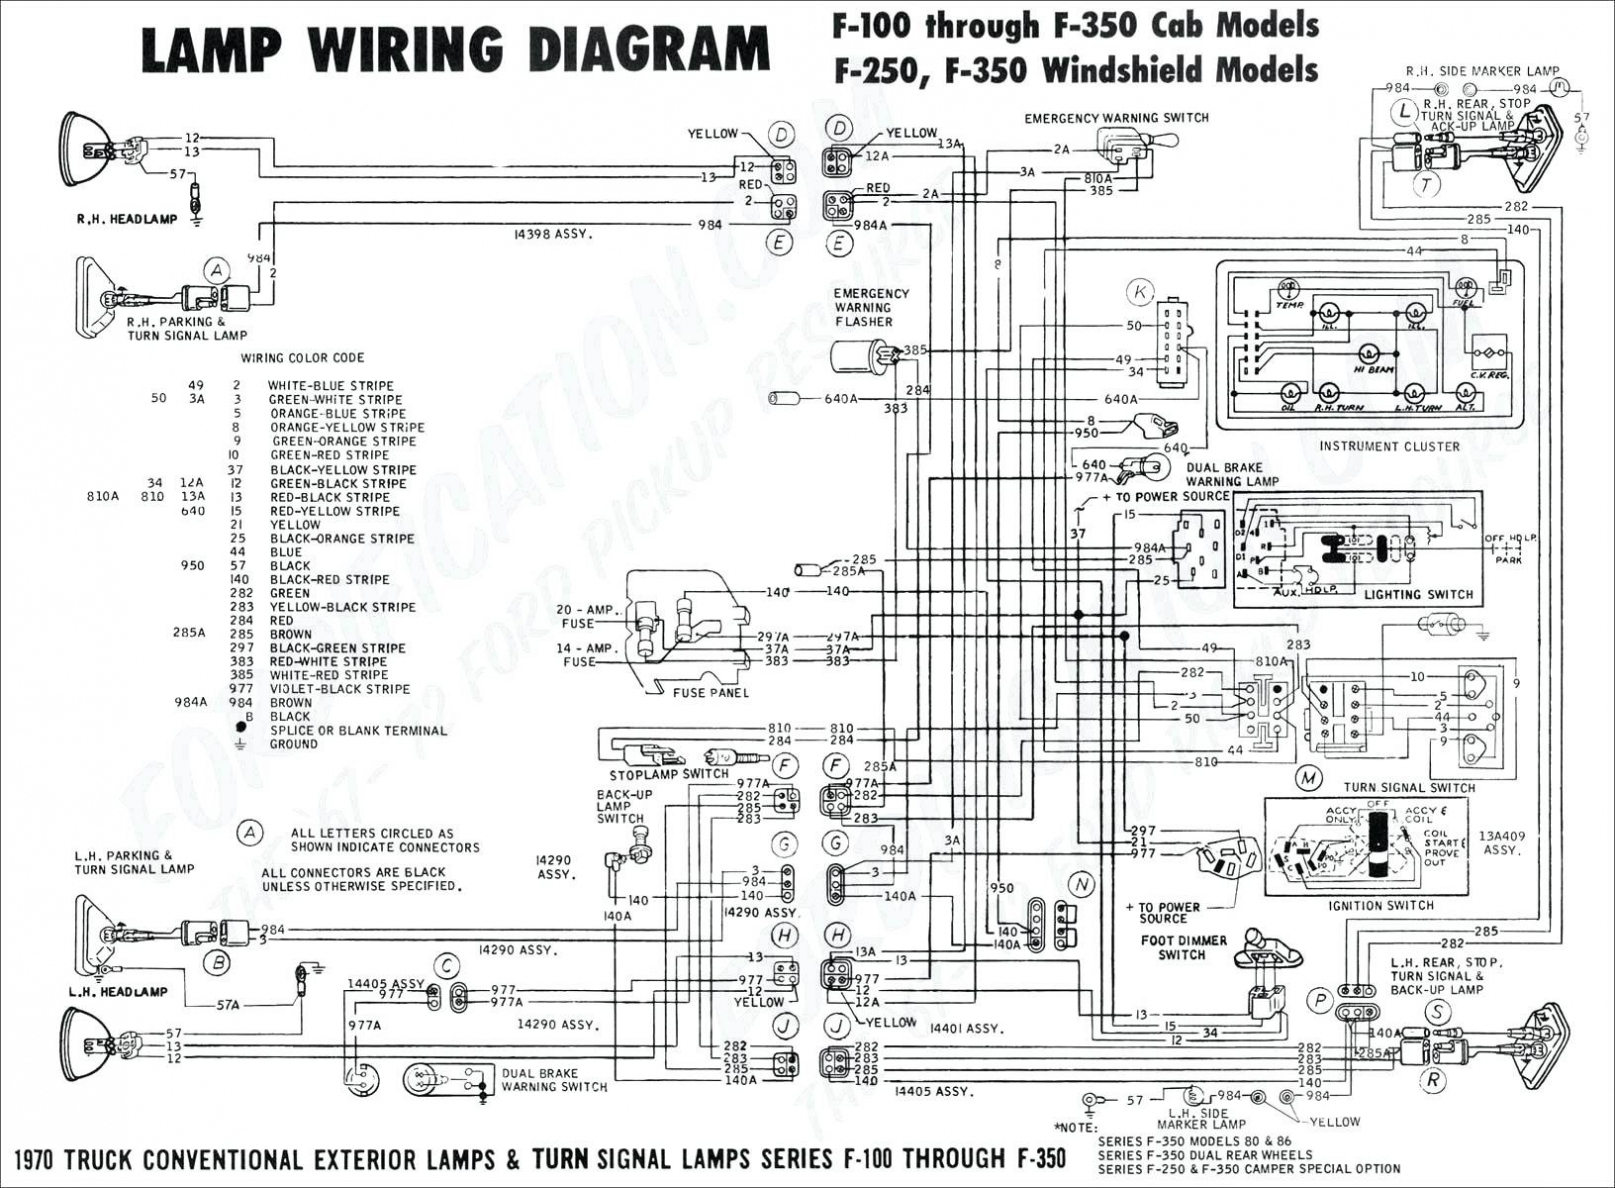 2006 ford f 150 wiring diagram wiring diagram for 2006 f150 harness